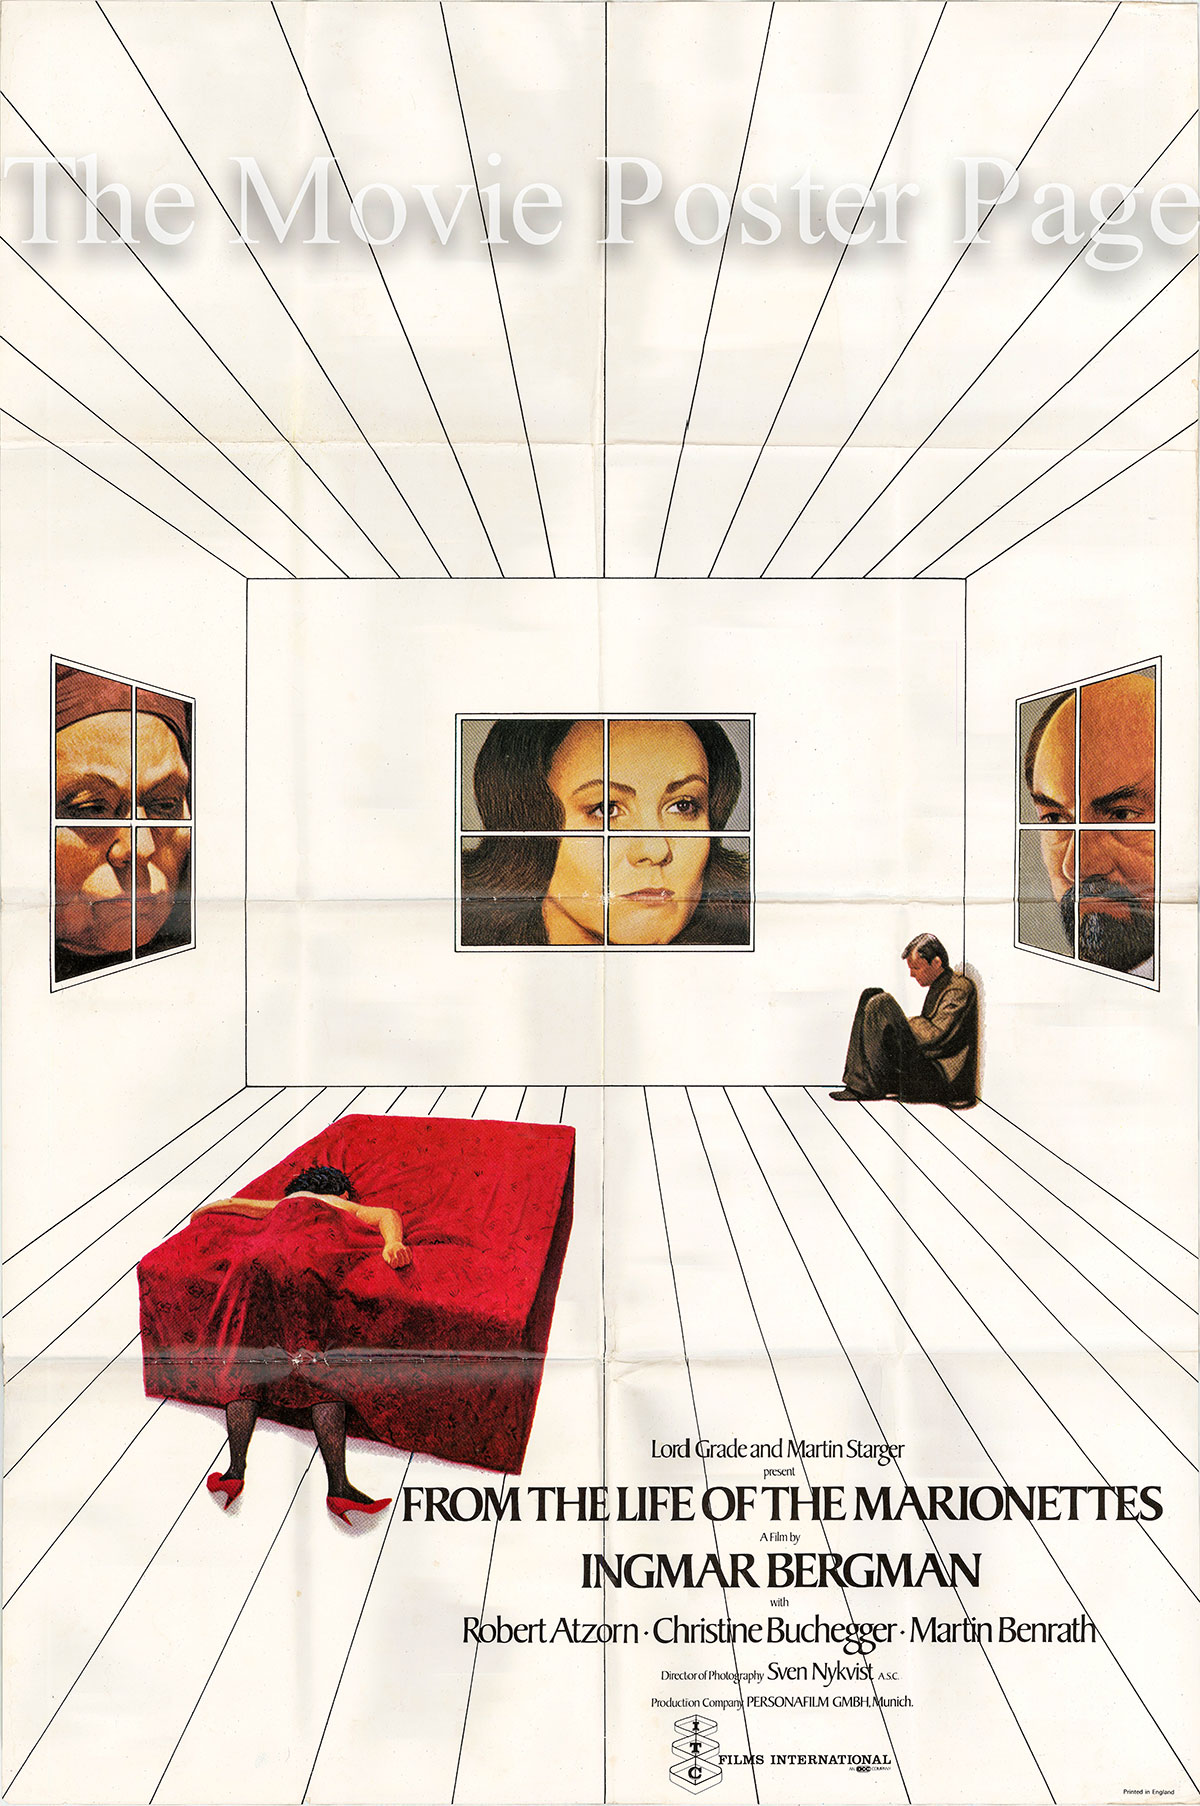 Pictured is a UK one-sheet poster for the 1979 Ingmar Bergman film From the life of the Marionettes starring Robert Atzorn.